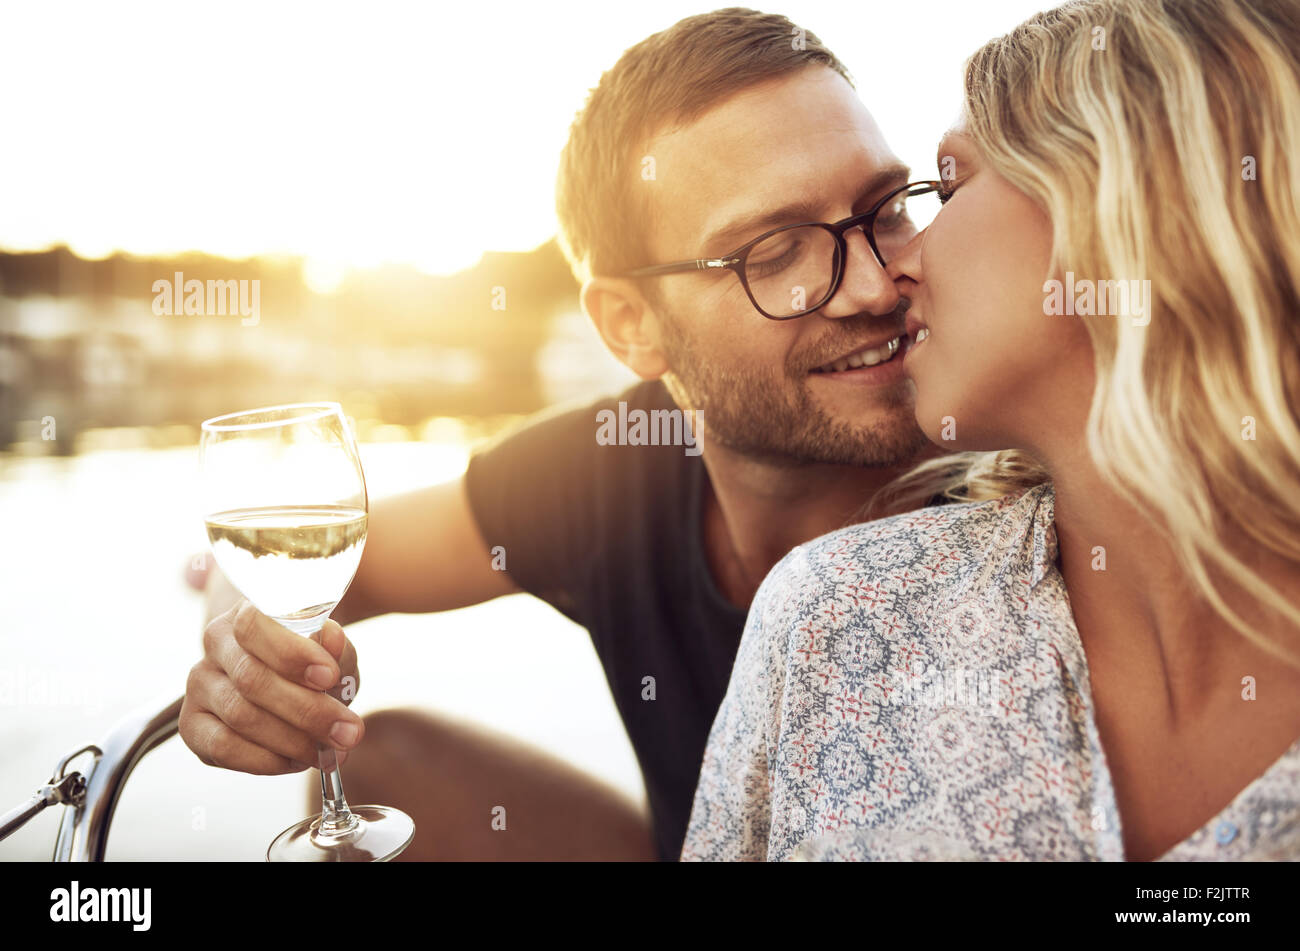 Couple Kissing Gently while Enjoying a glass of Wine - Stock Image